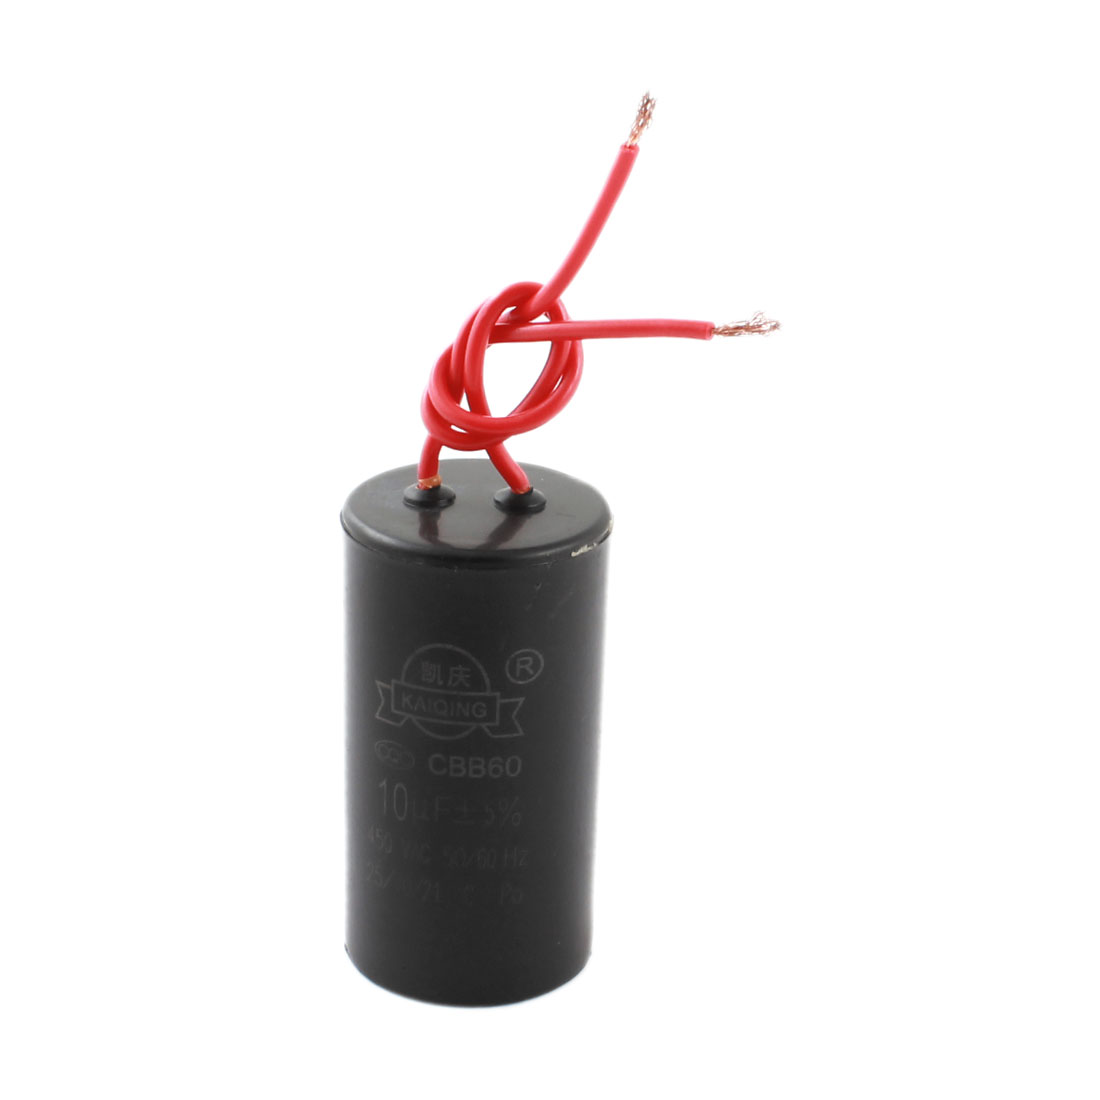 AC 450V 10uF CBB60 Type Wired Polypropylene Film Motor Run Capacitor for Washers